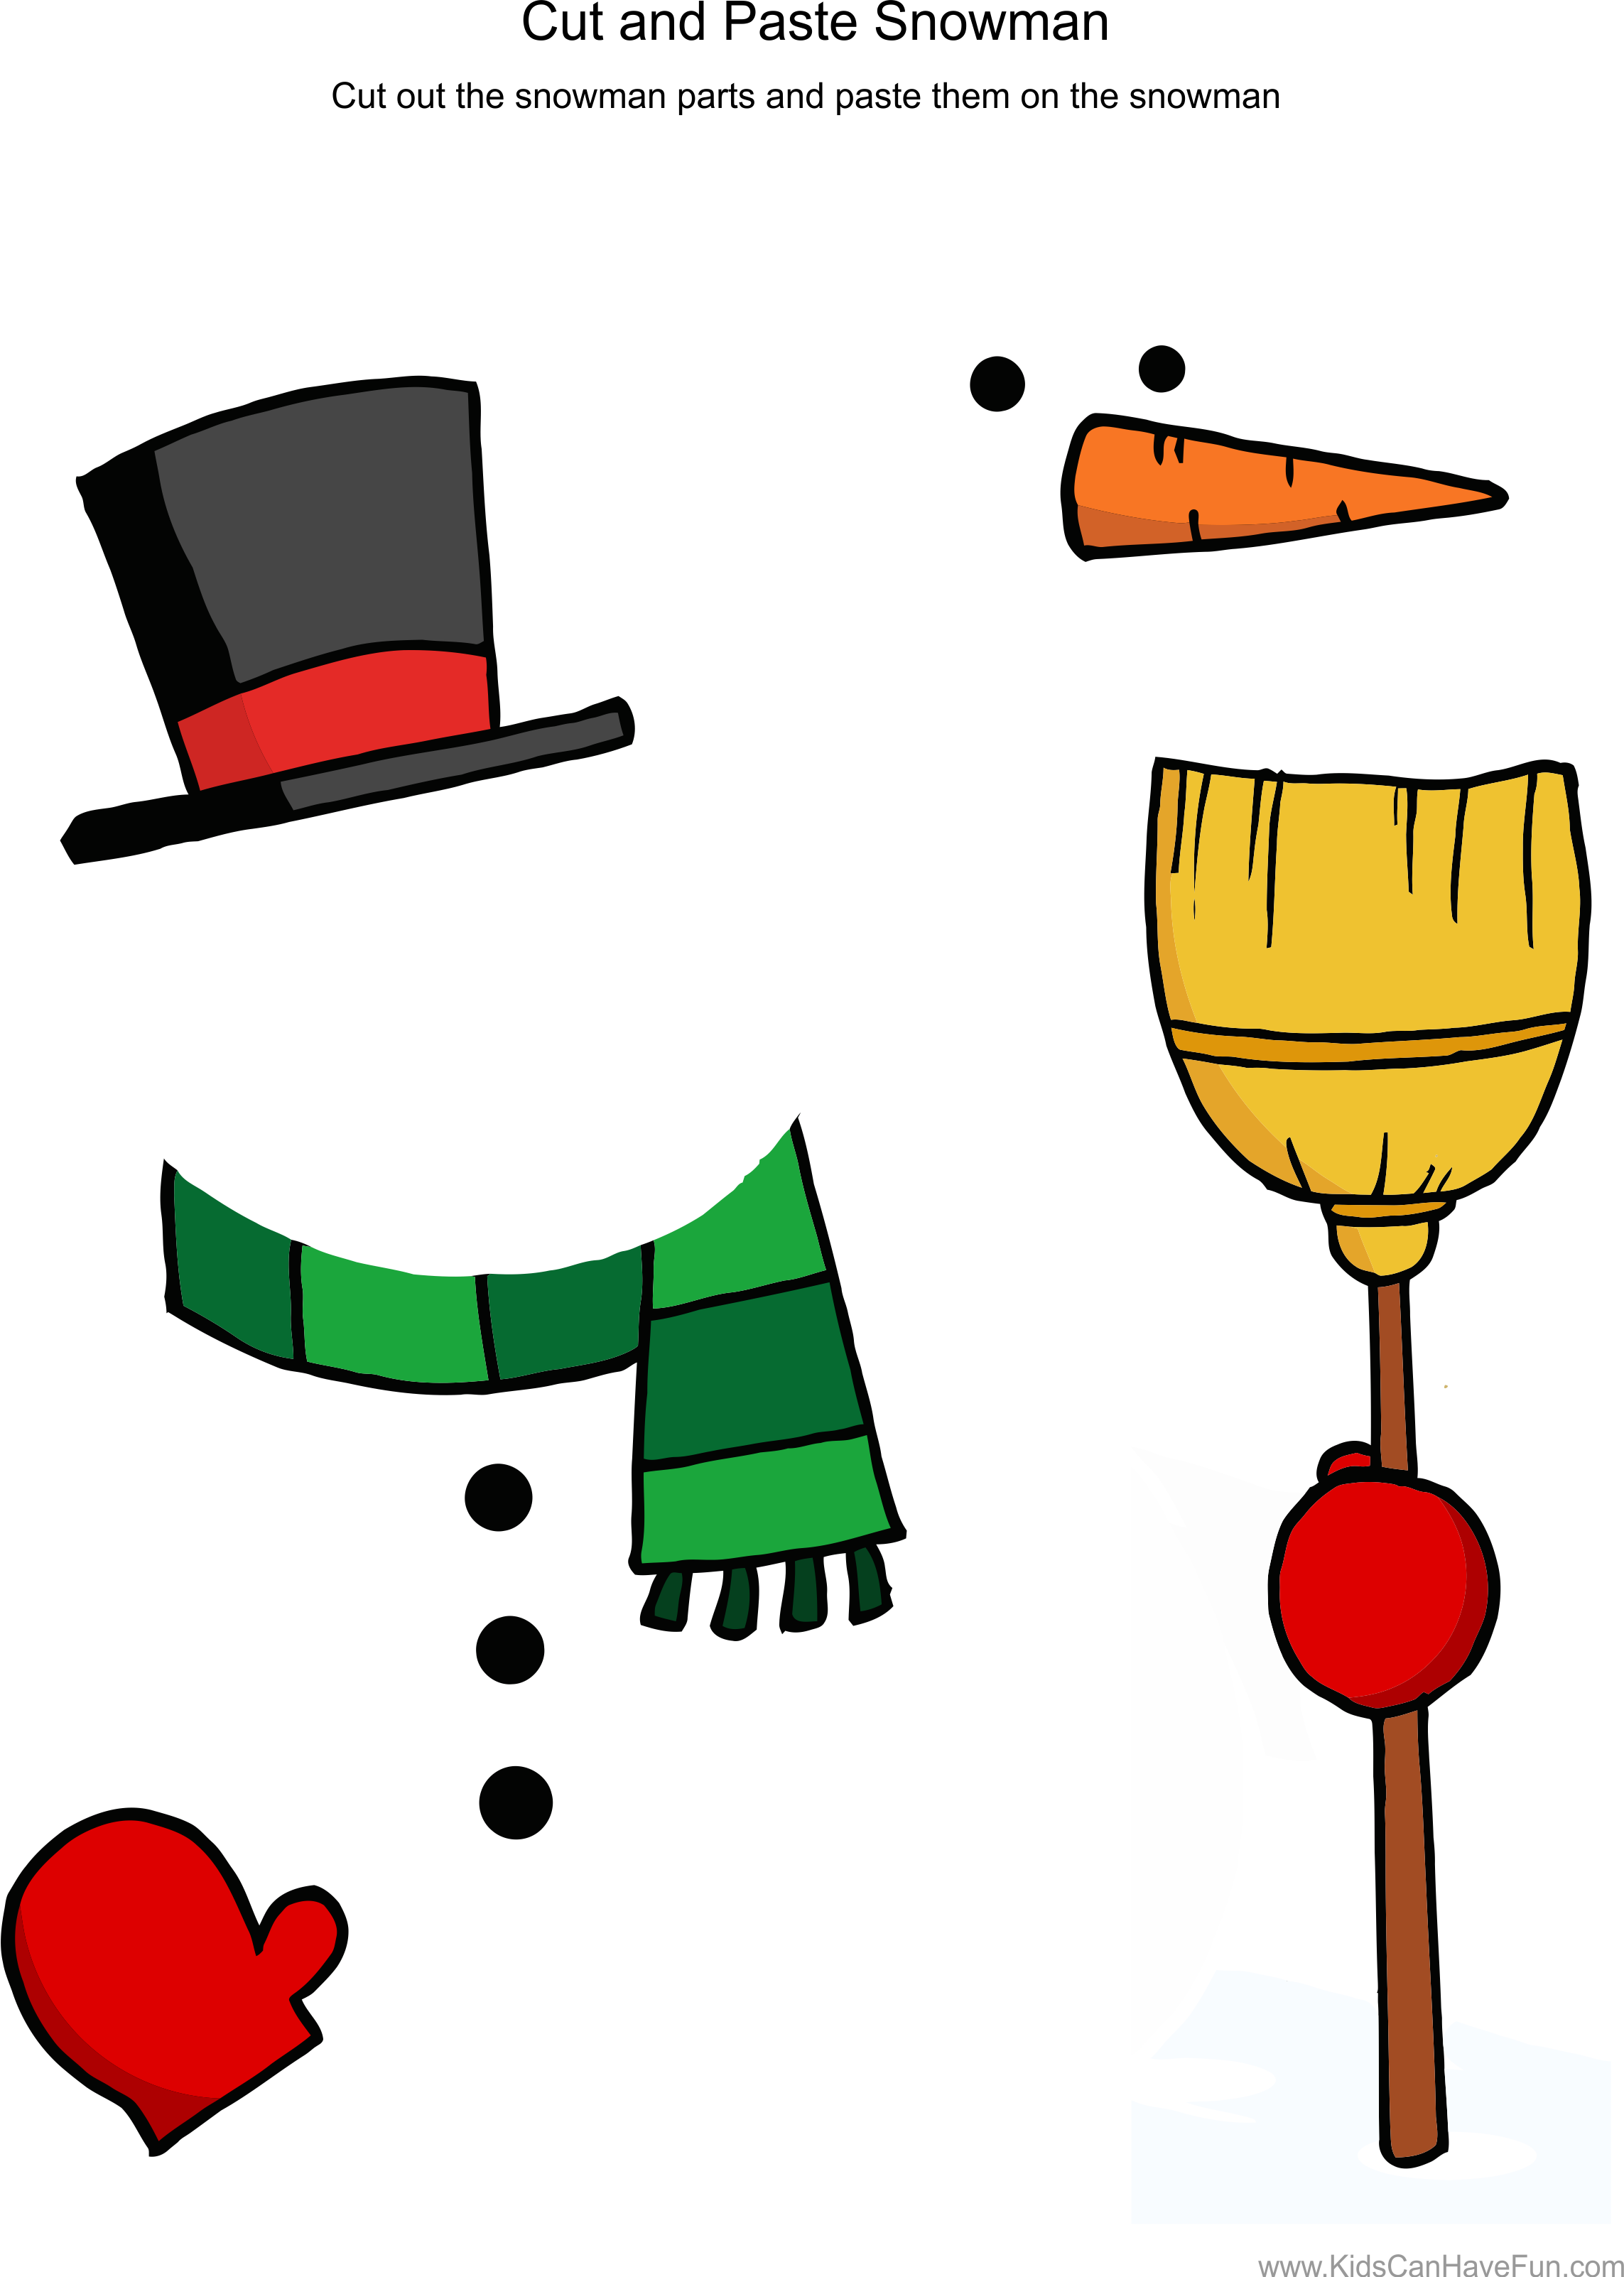 Cut and Paste Snowman Worksheet | Pinterest | Snowman, Worksheets ... png freeuse stock